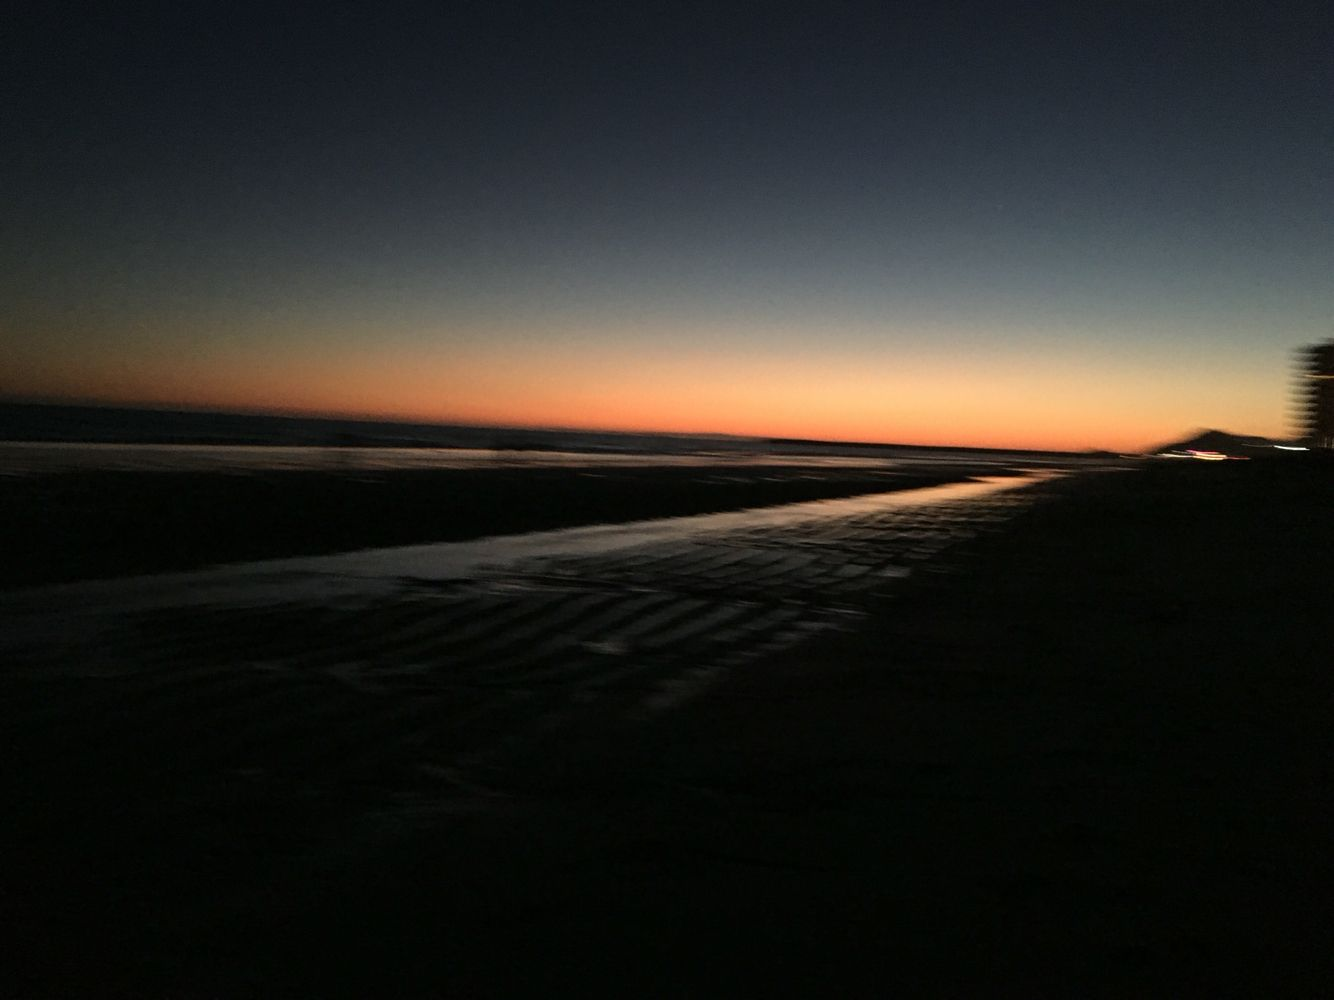 Sunsets at the beach